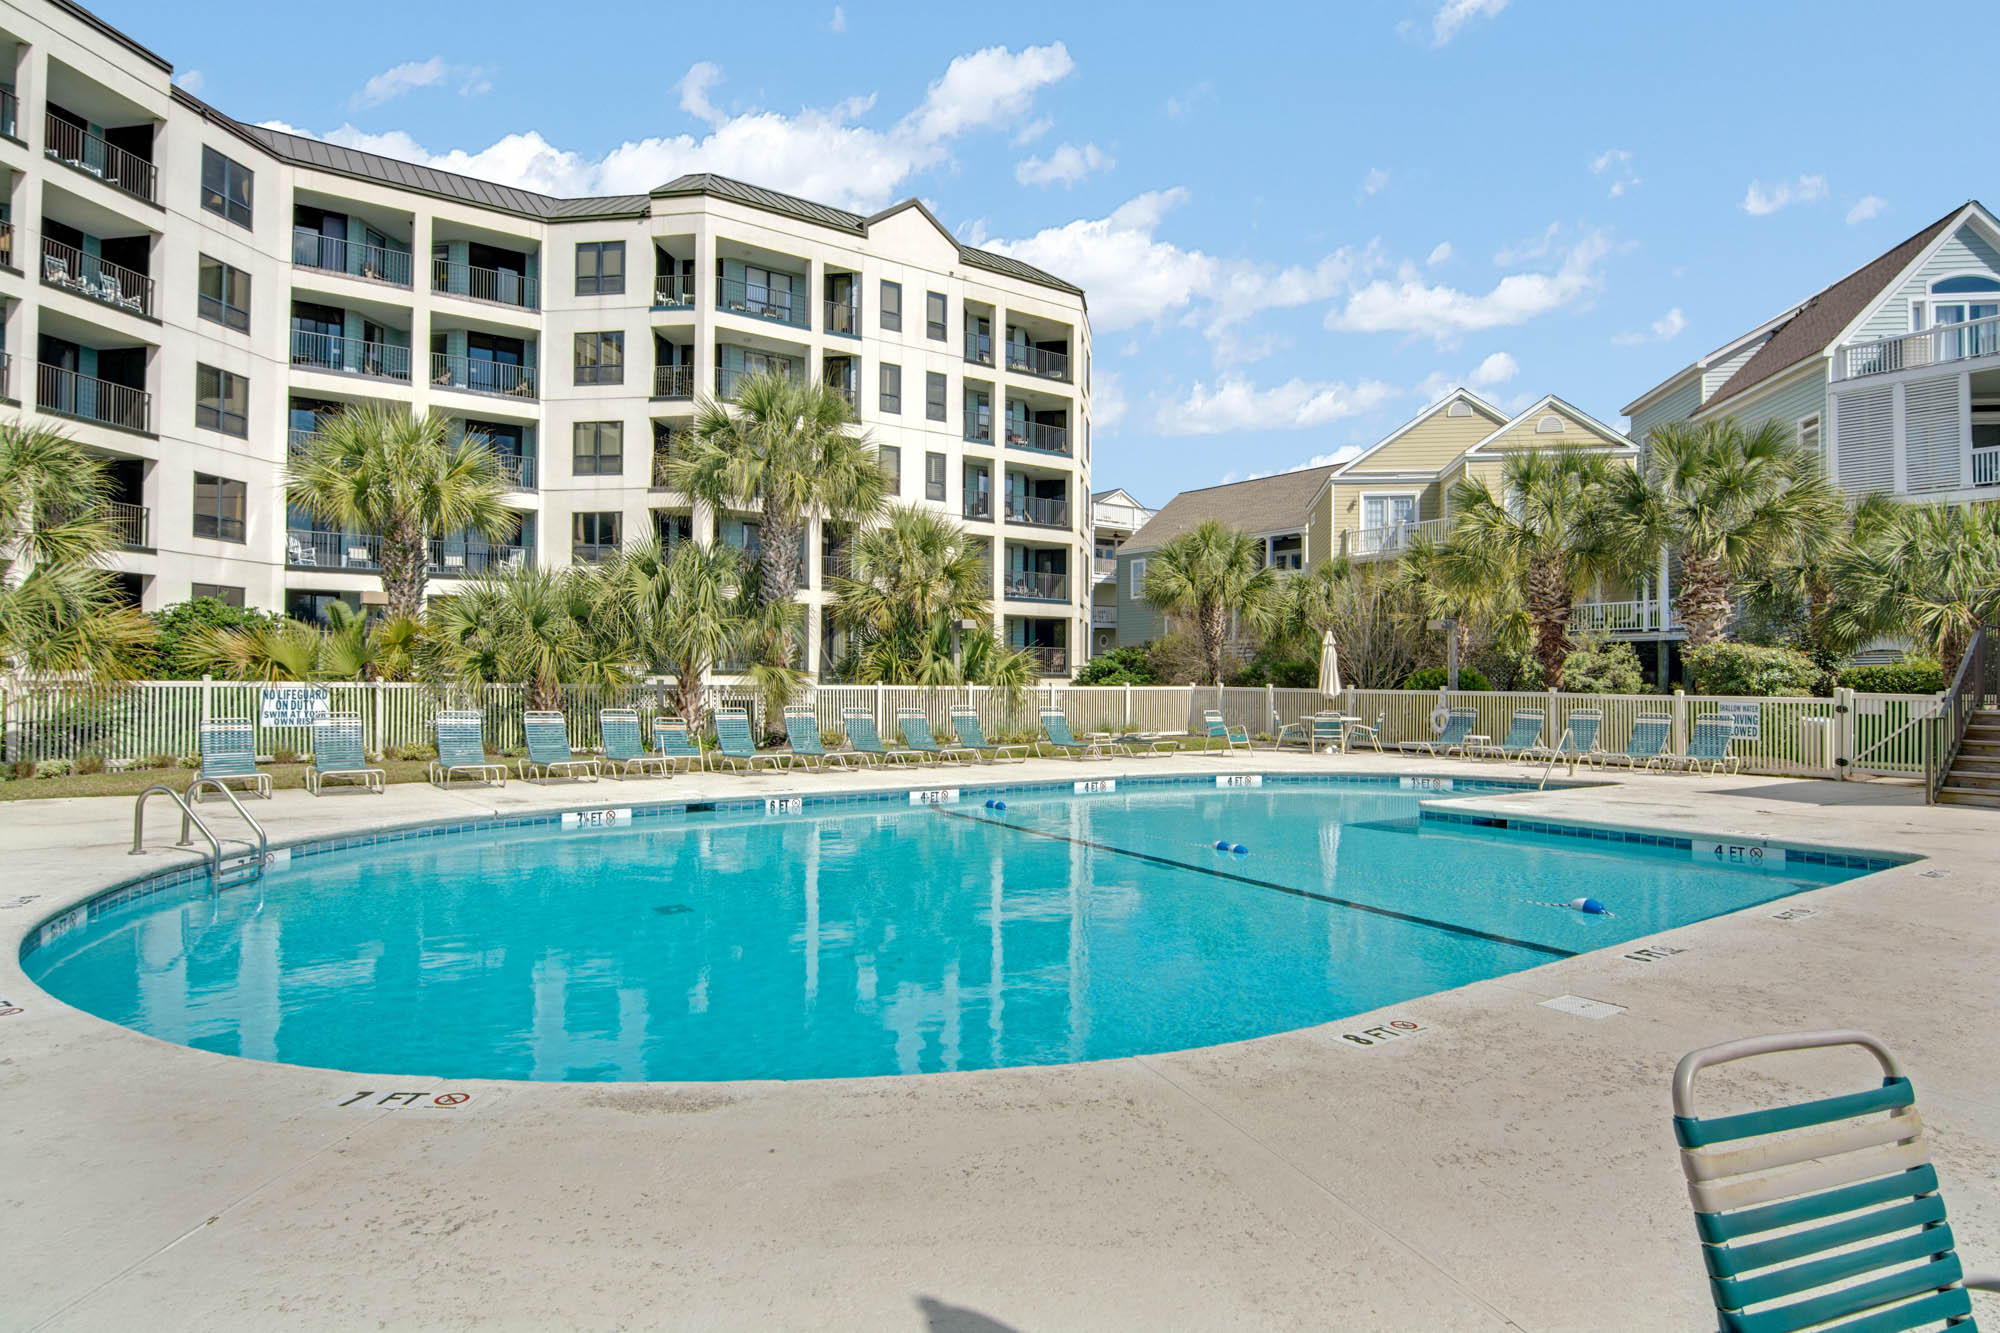 Wild Dunes Homes For Sale - 210 Summerhouse, Isle of Palms, SC - 14